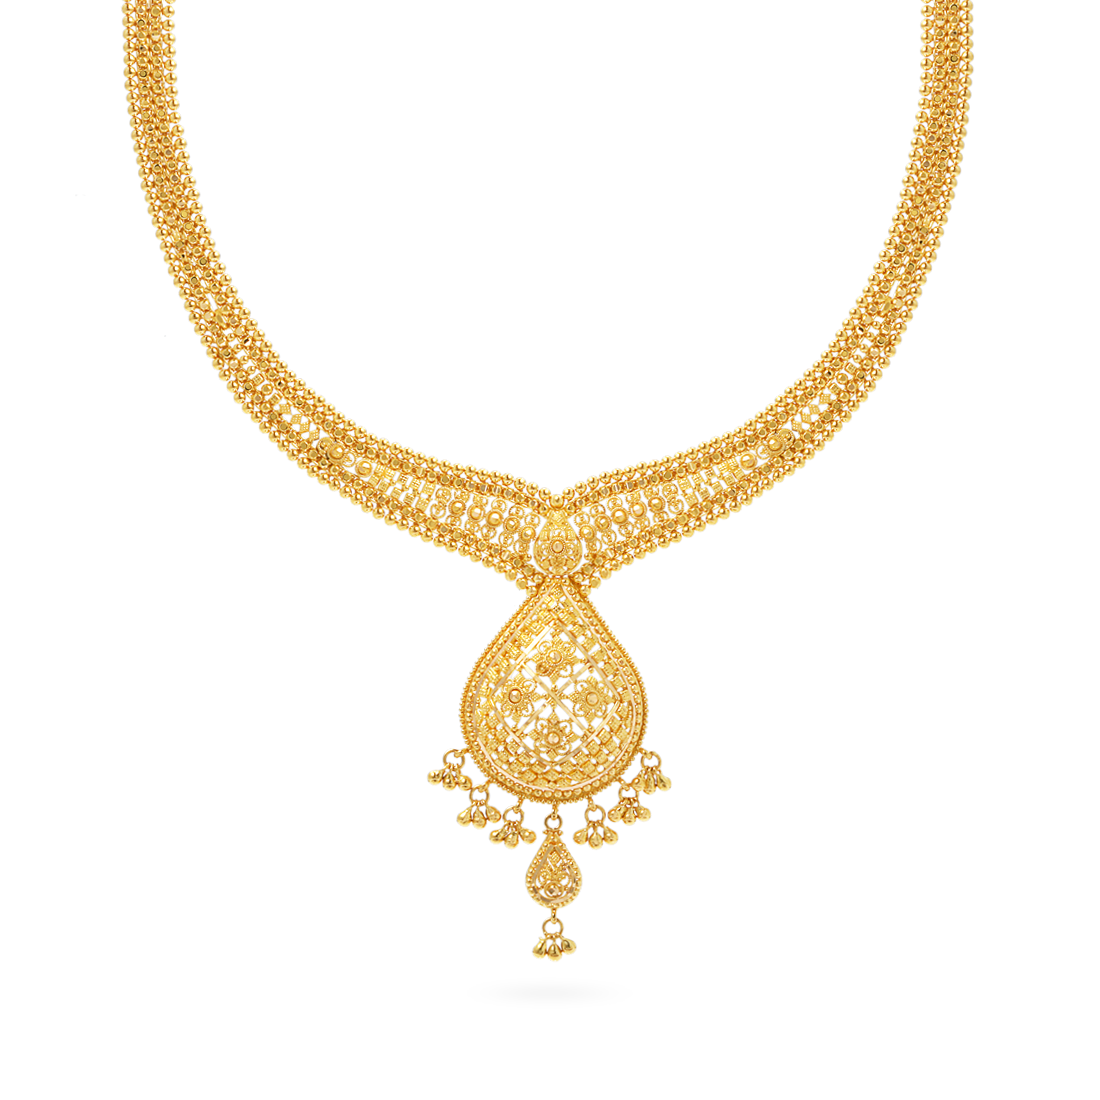 3 Tola Gold Necklace - All The Best Gold In 2018